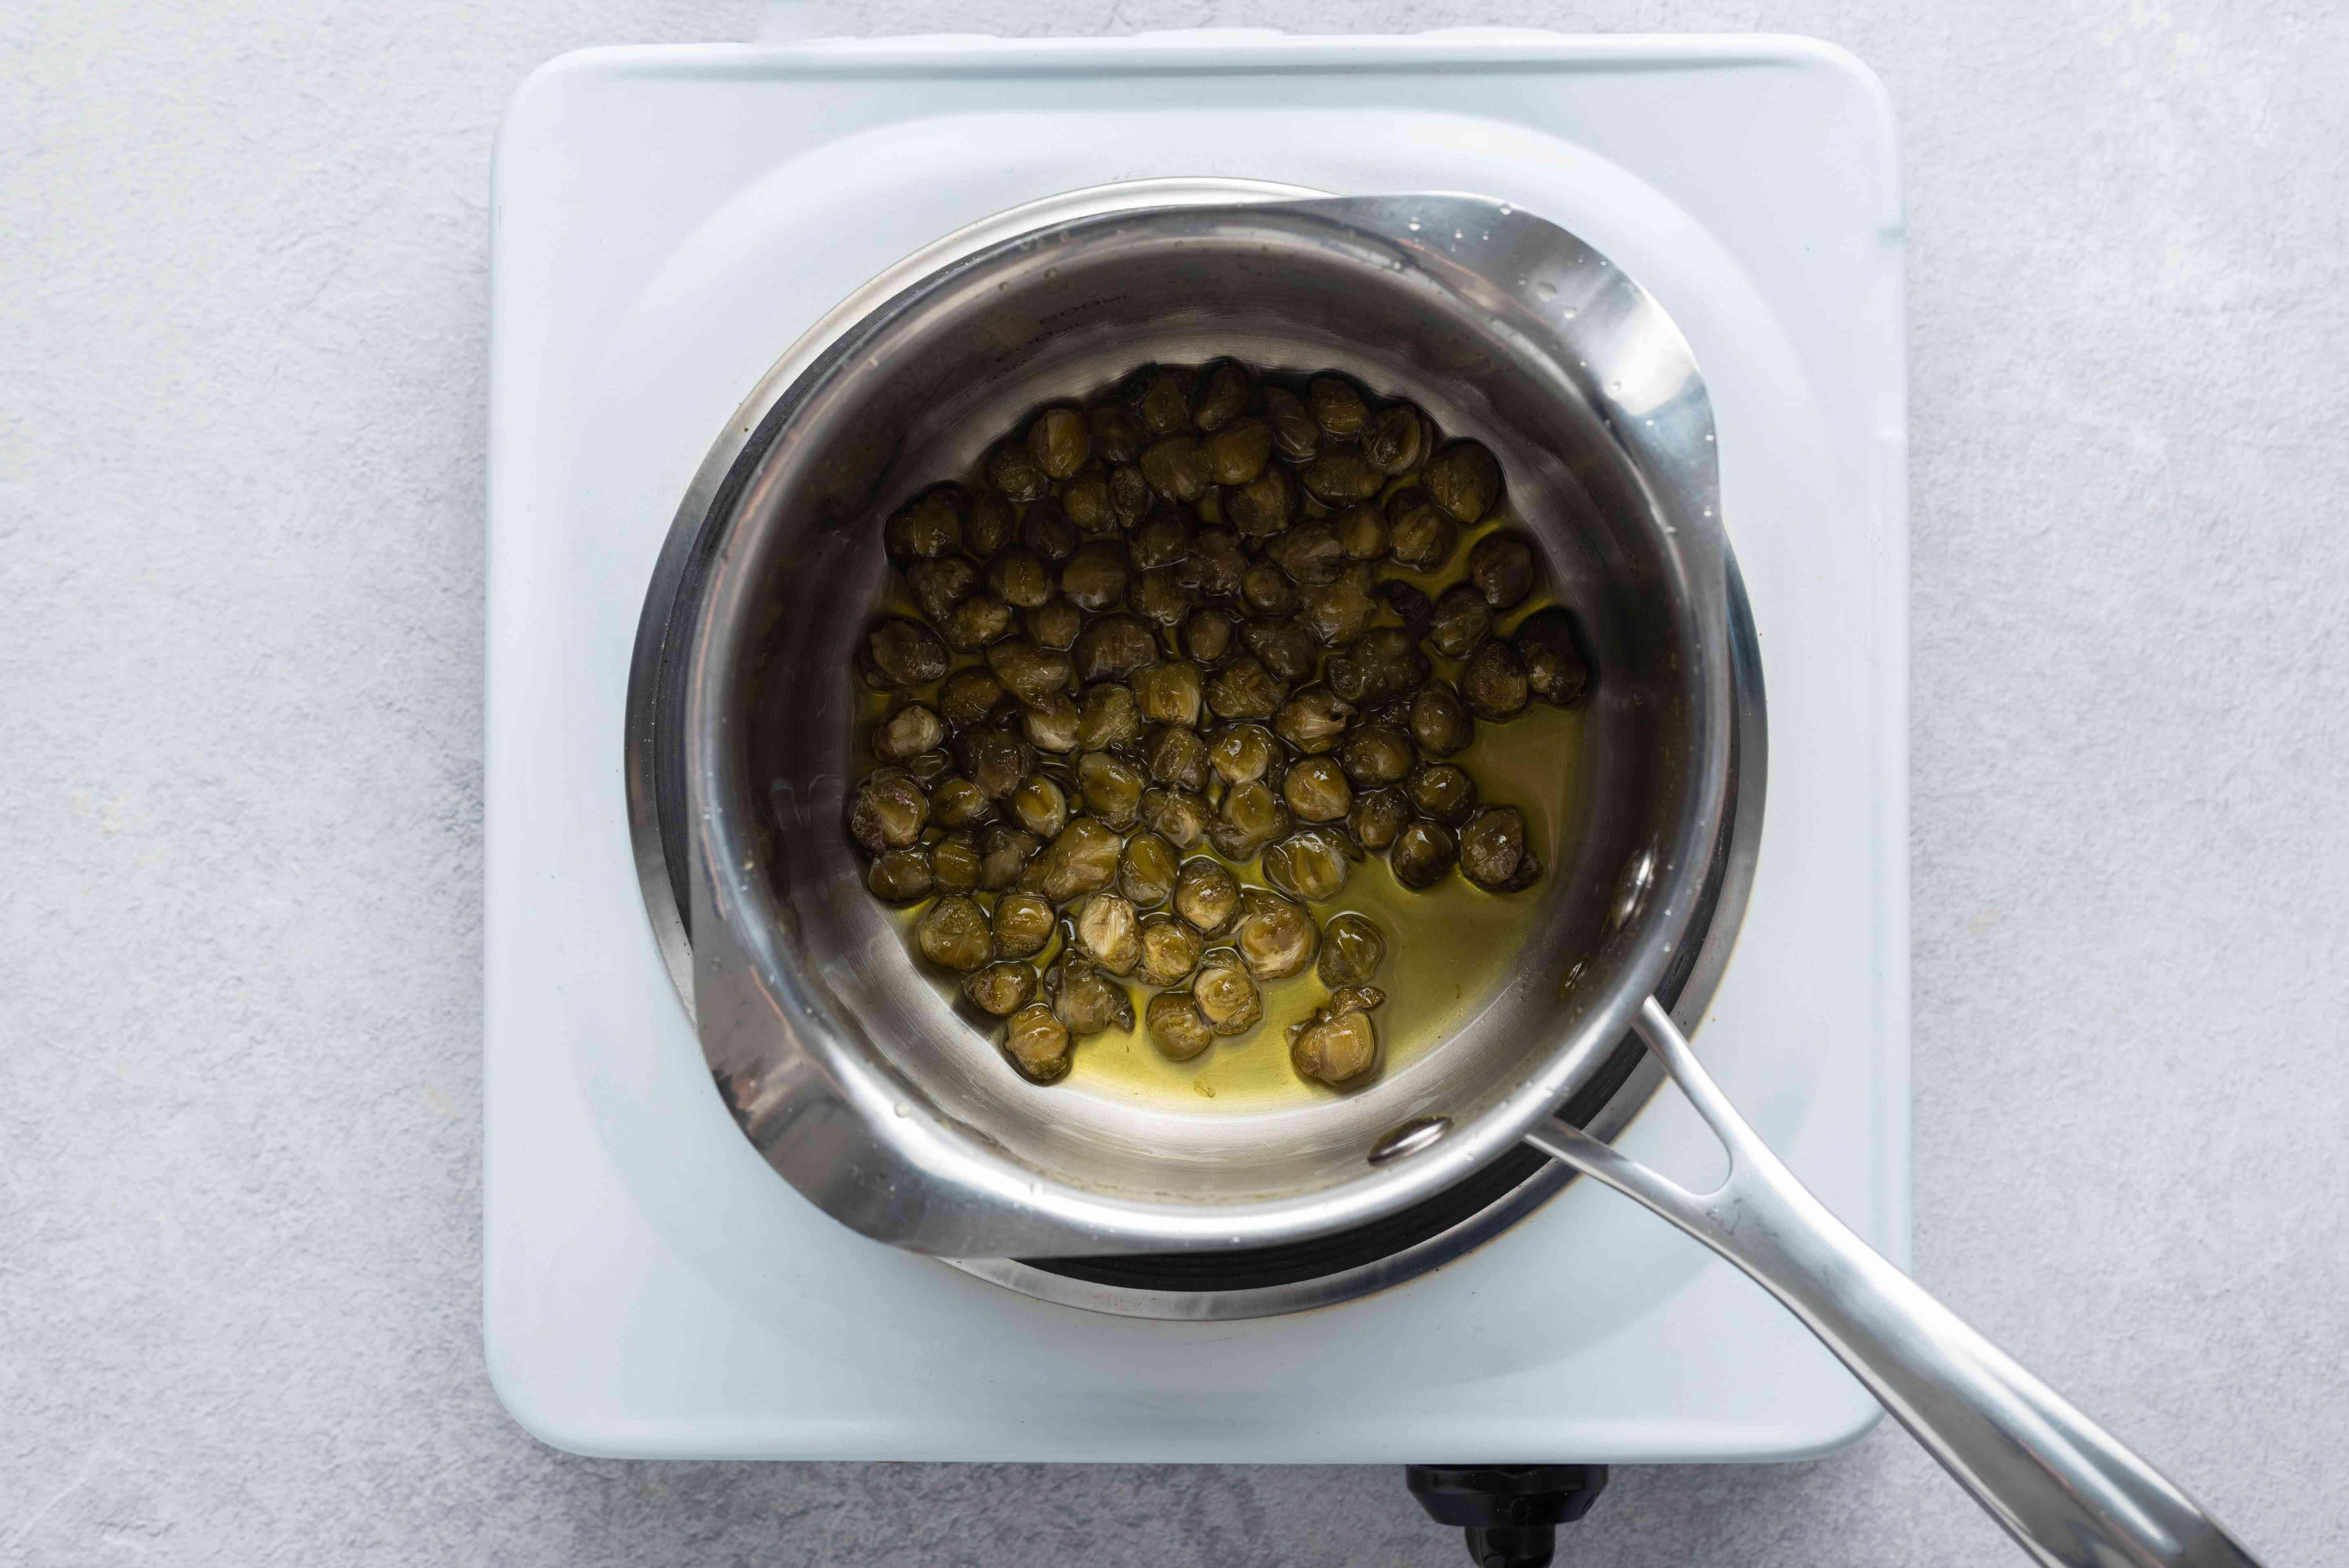 capers and olive oil in a saucepan